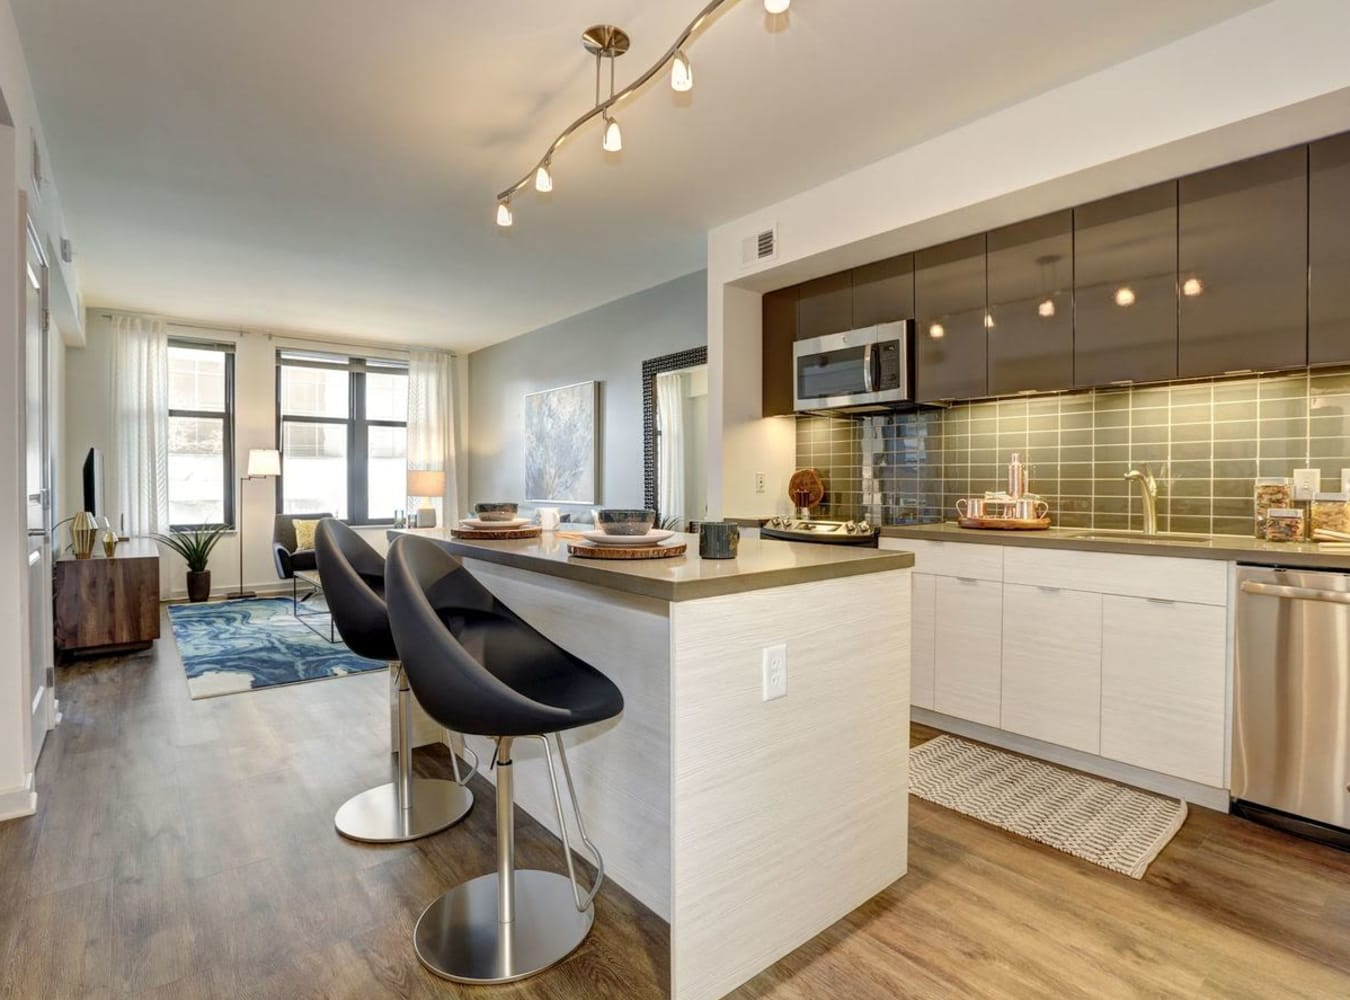 A kitchen with an island bar at Solaire 7077 Woodmont in Bethesda, Maryland